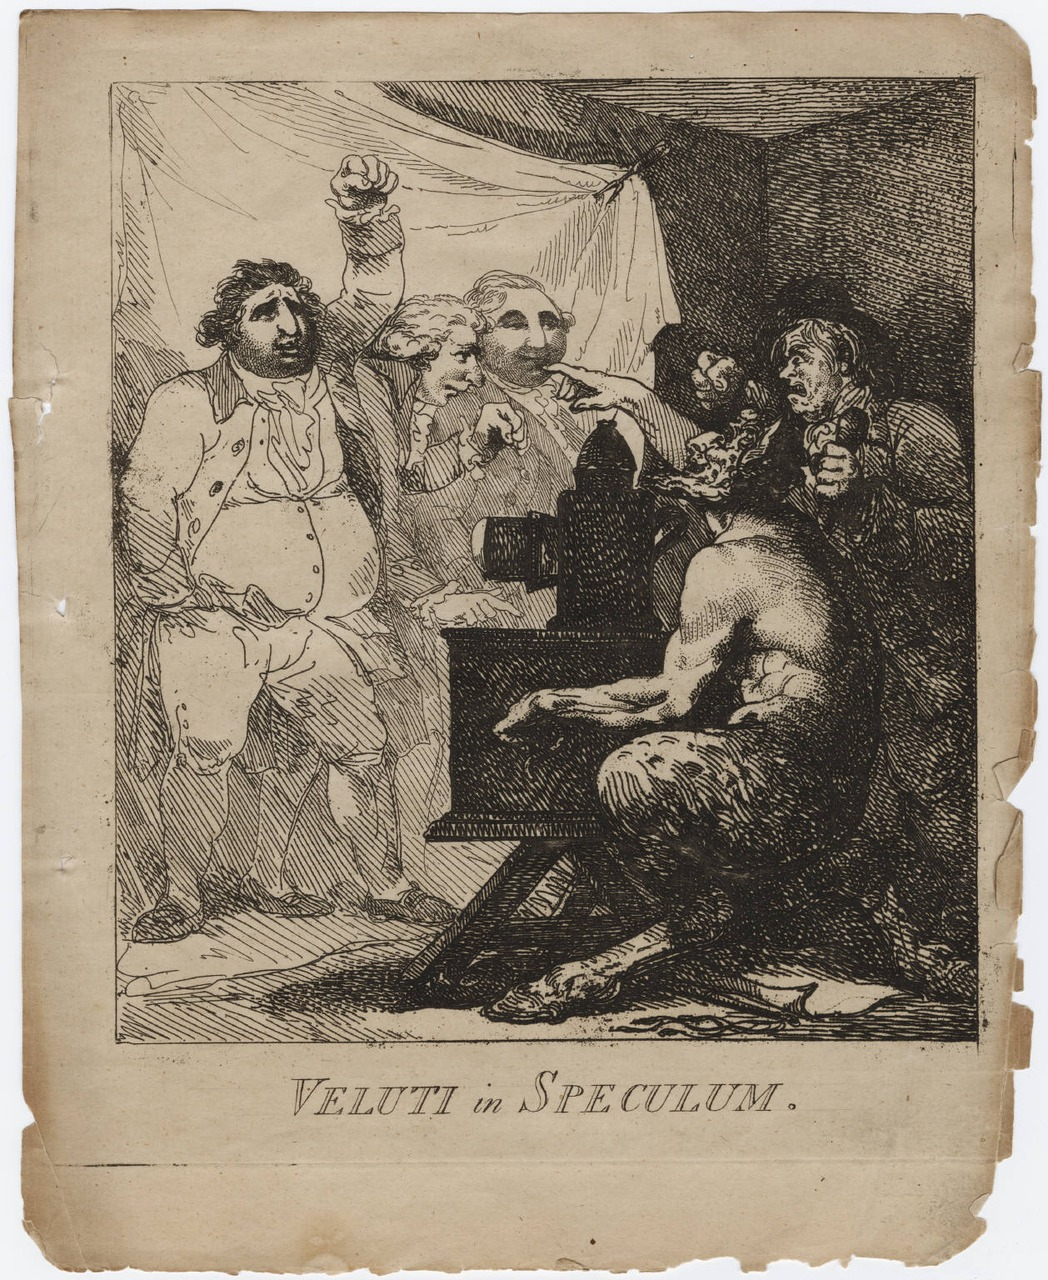 darksilenceinsuburbia :       A Plate from The Magic Lantern or Les Ombres Patriotiques